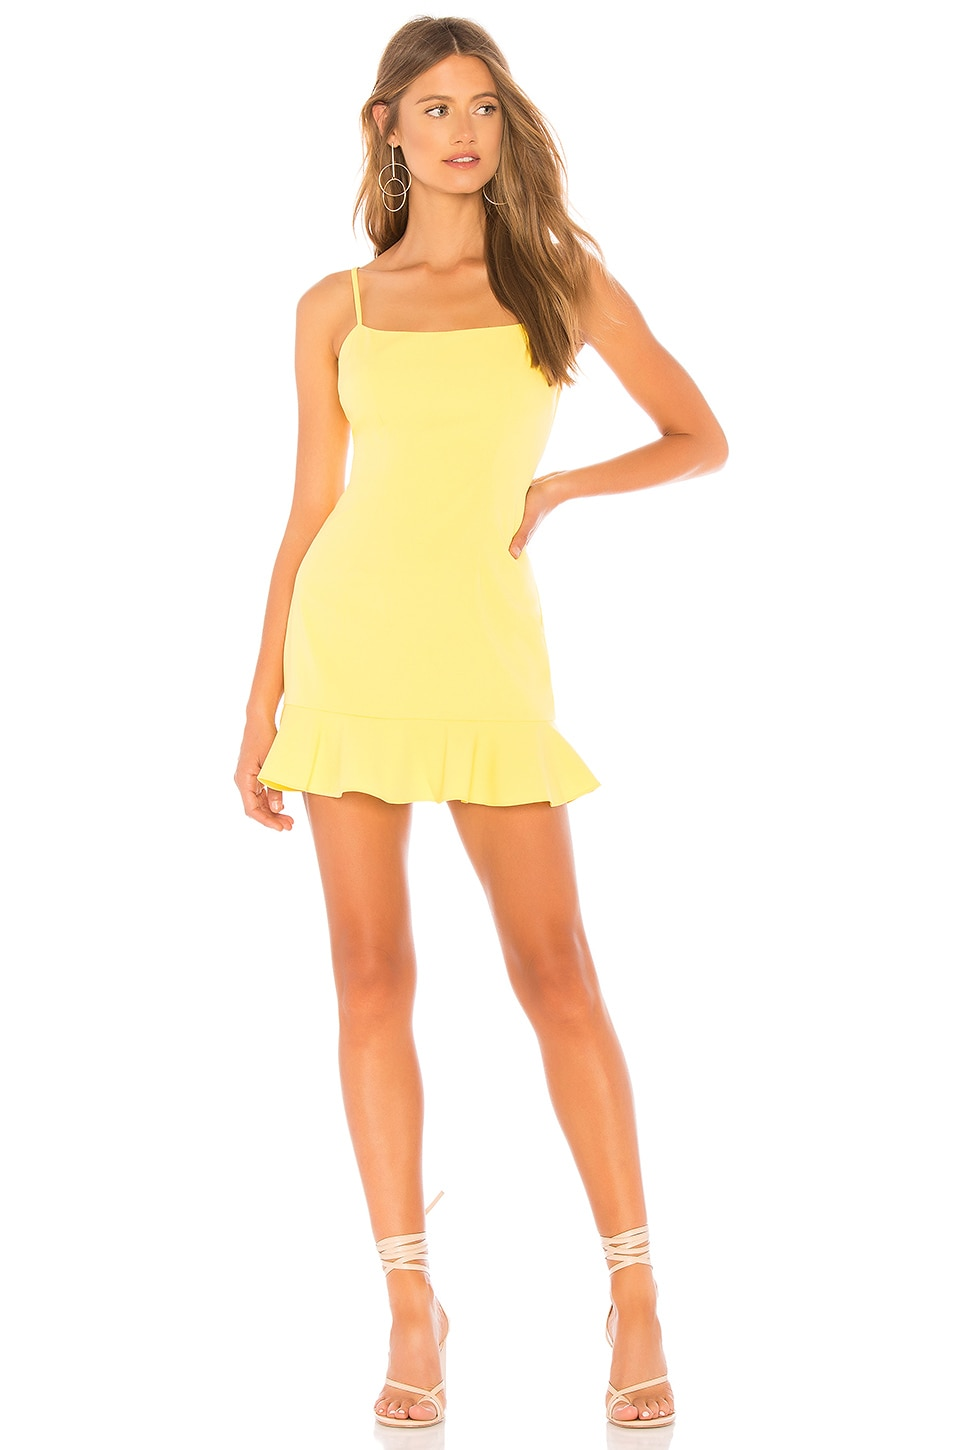 Lovers + Friends MINIVESTIDO BODY TEDDY